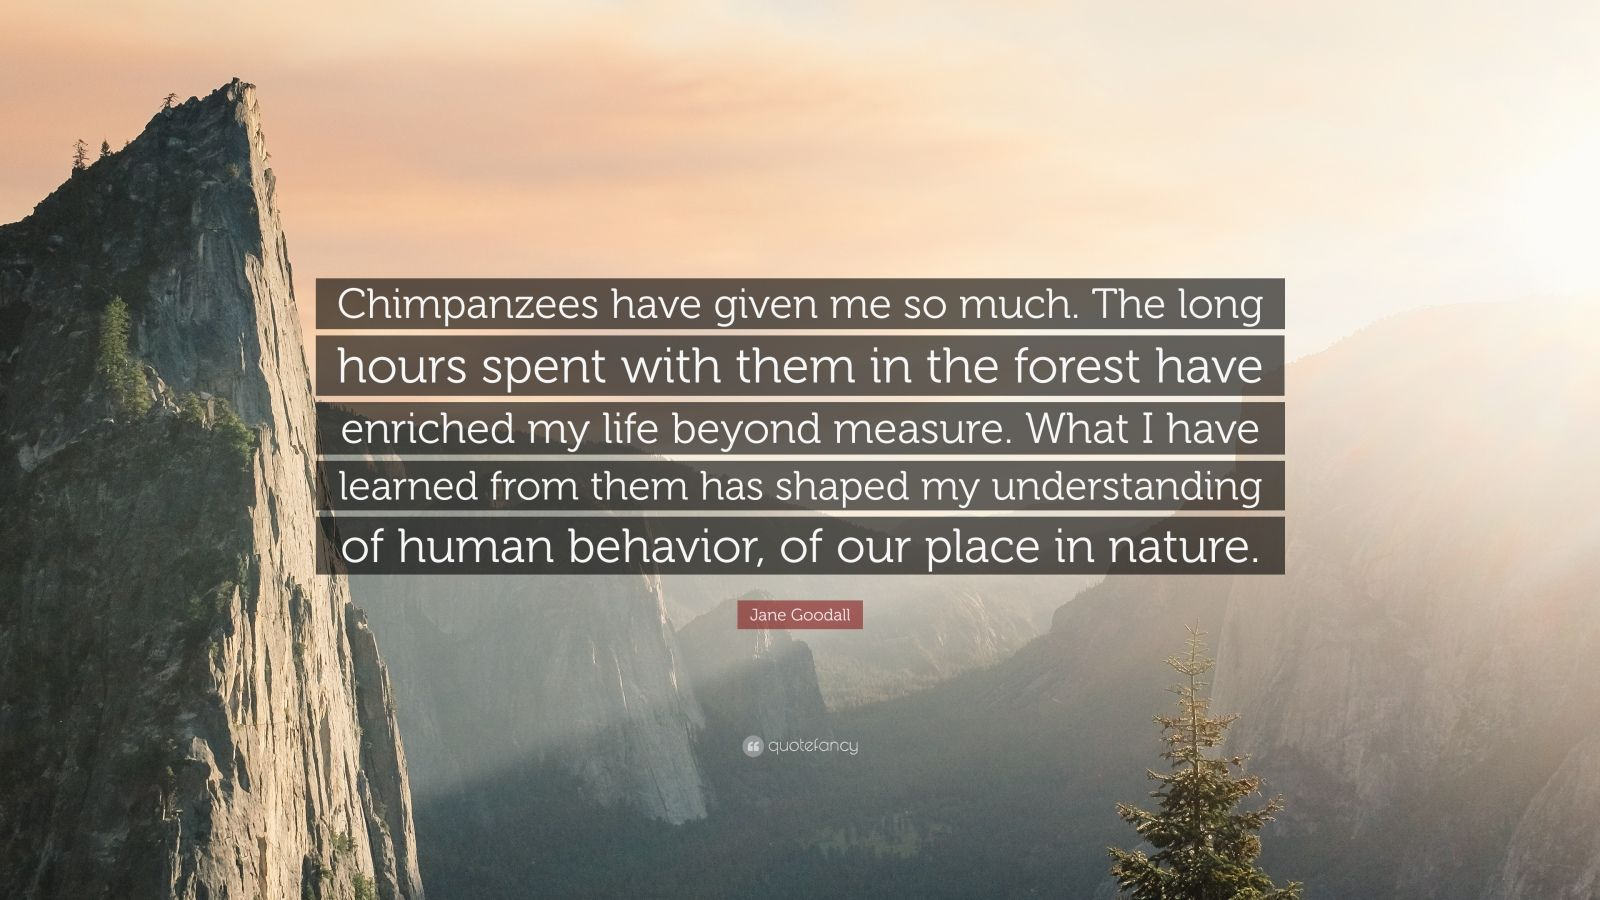 "Jane Goodall Quote: ""Chimpanzees have given me so much. The long hours spent with them in the forest have enriched my life beyond measure. What I have learned from them has shaped my understanding of human behavior, of our place in nature."""